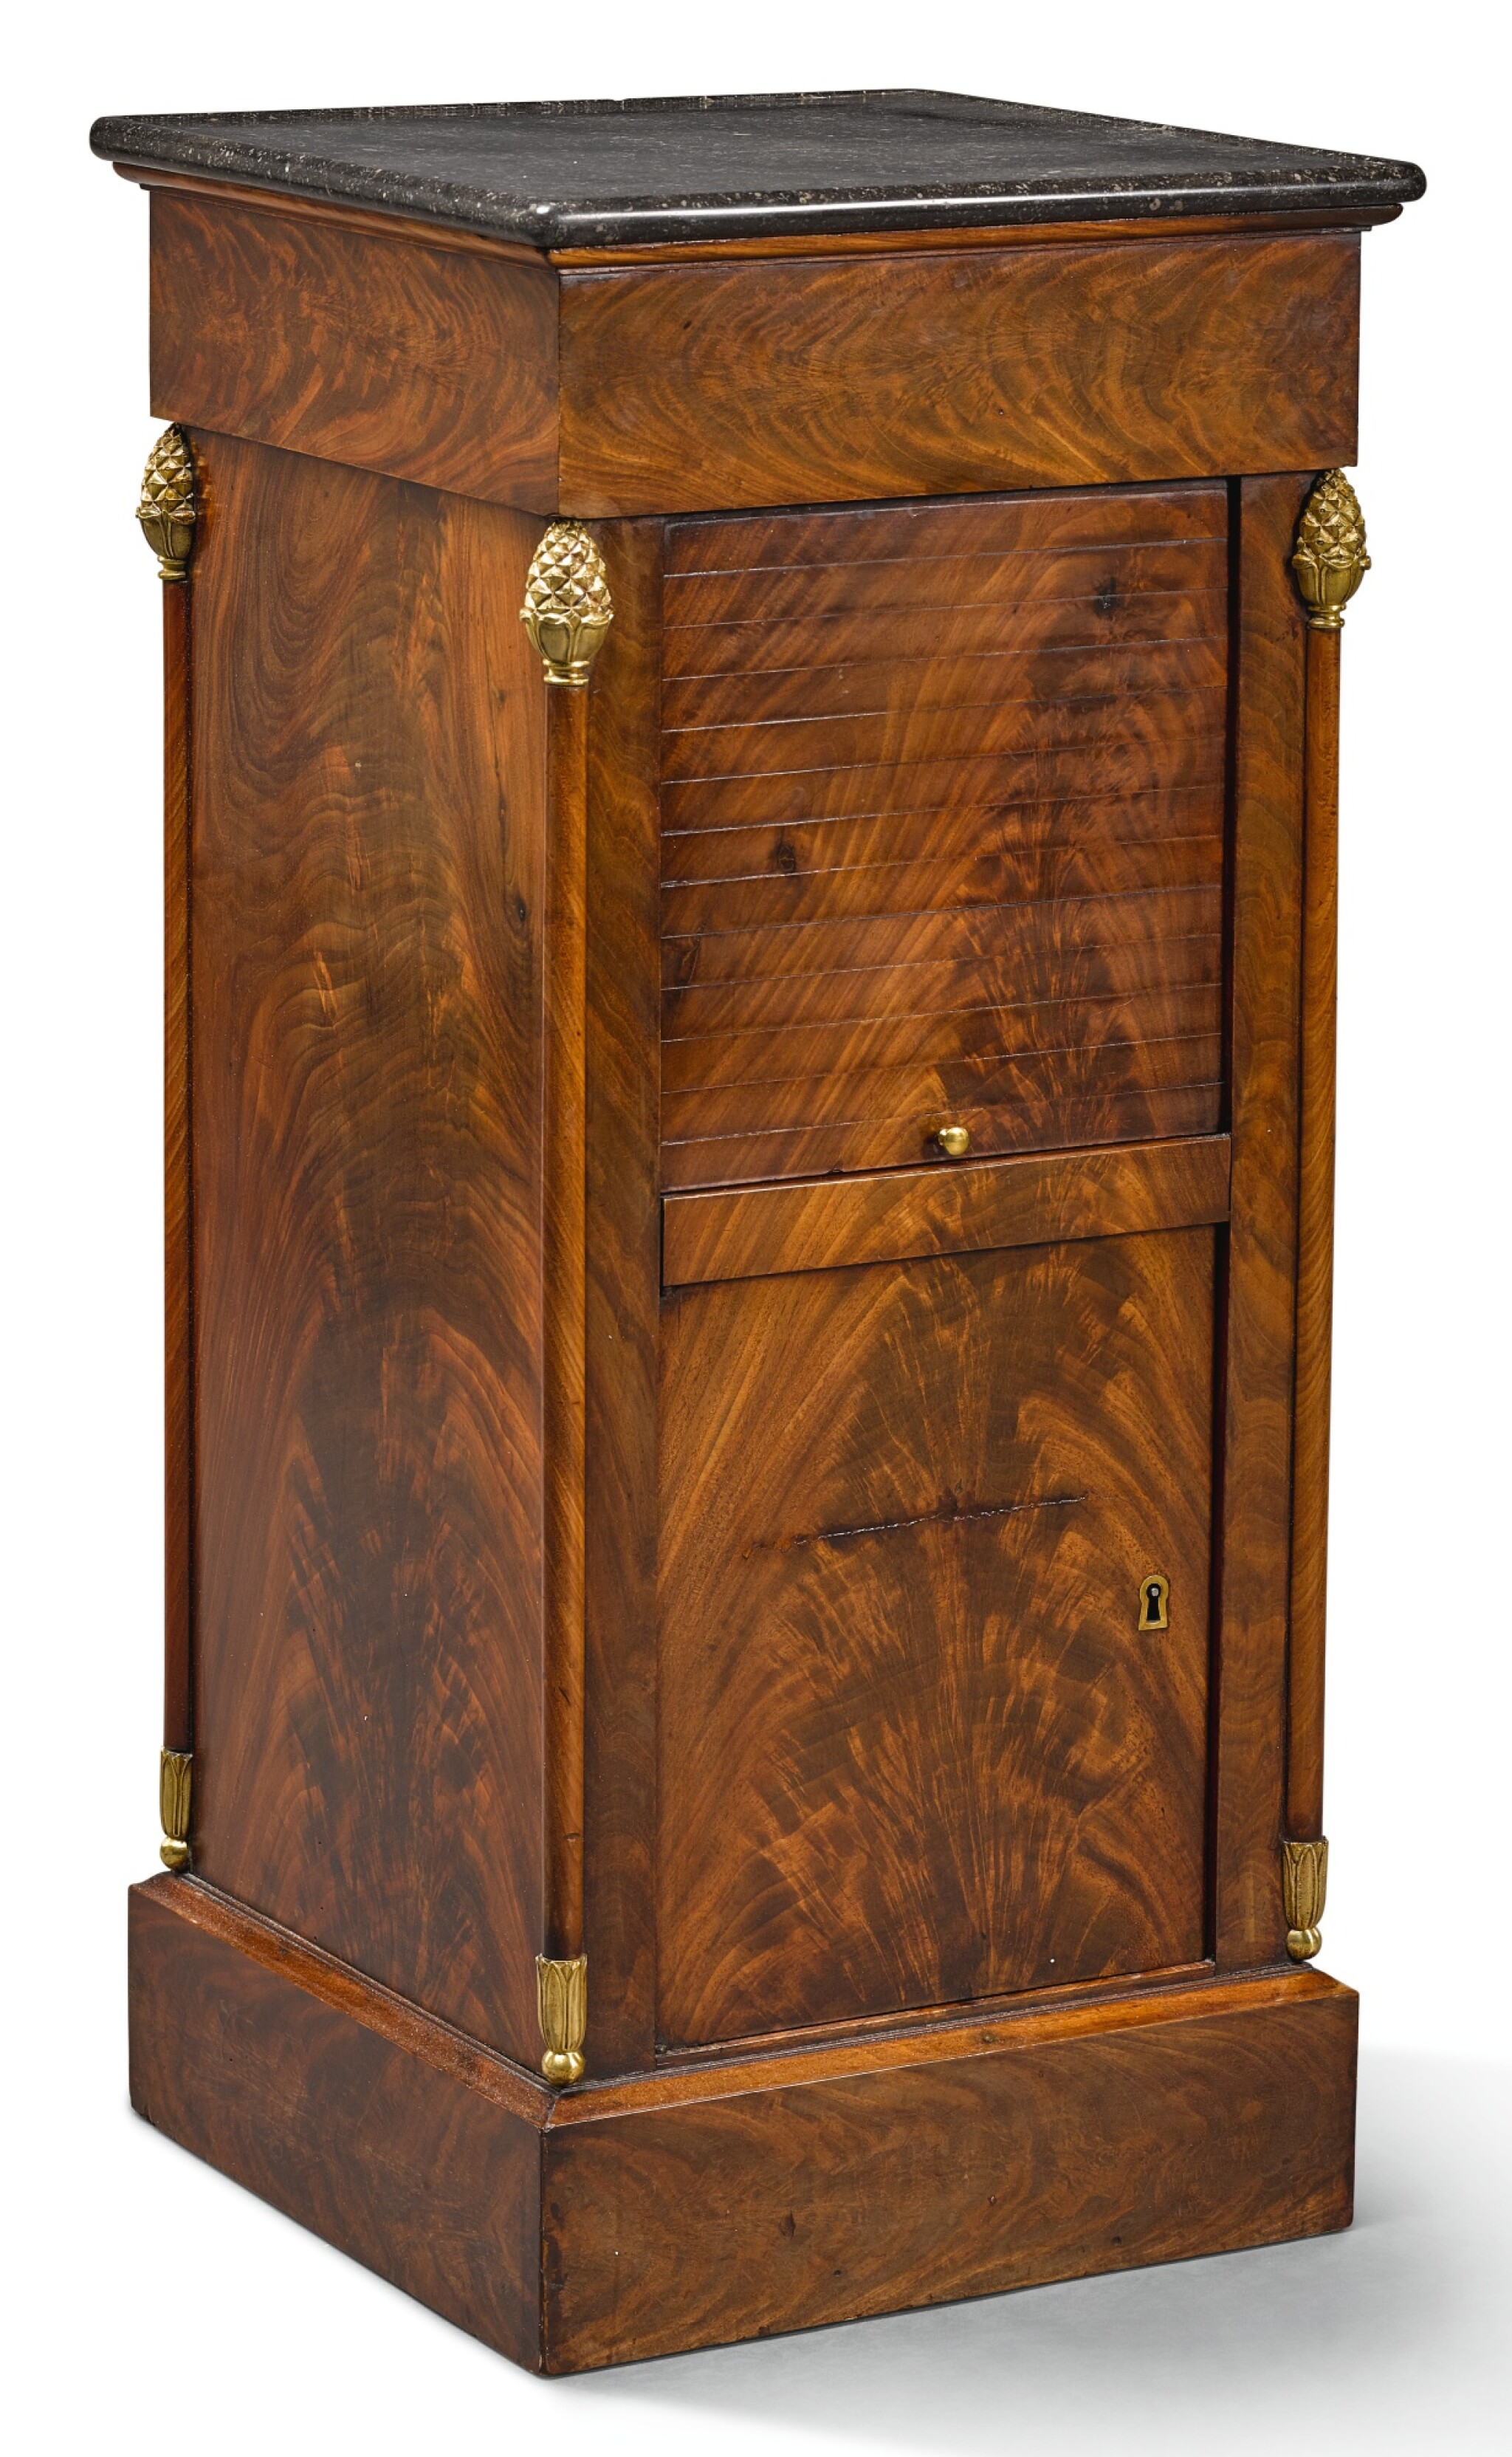 View full screen - View 1 of Lot 20. AN EMPIRE GILT-BRASS MAHOGANY CUPBOARD EARLY 19TH CENTURY.